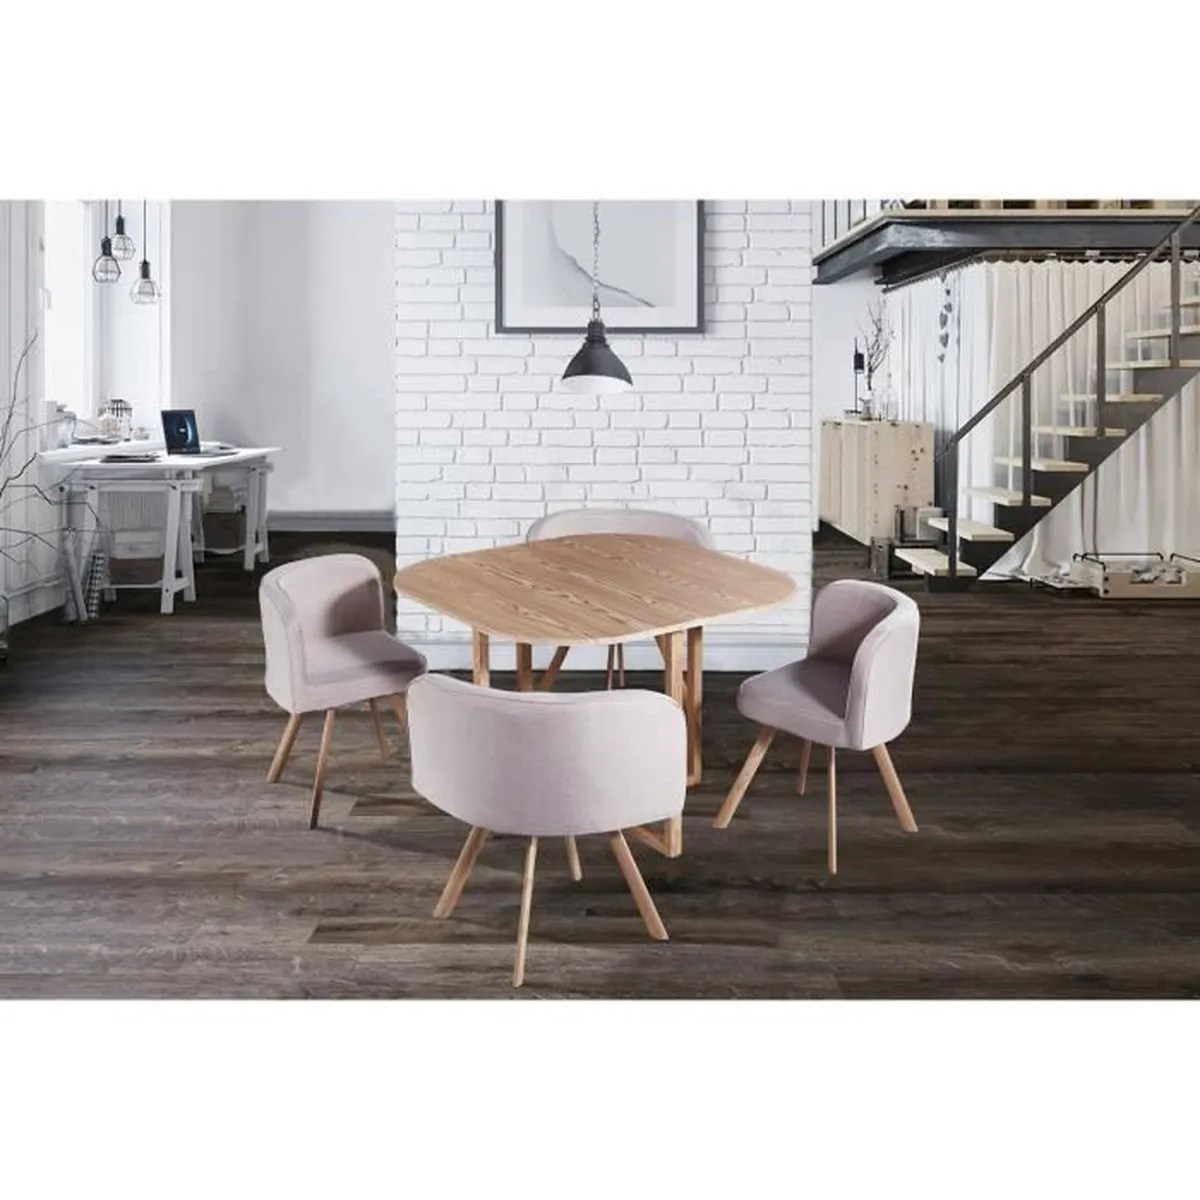 Ensemble Table A Manger Et Chaise Ensemble Table 4 Chaises Encastrable Beige Flen